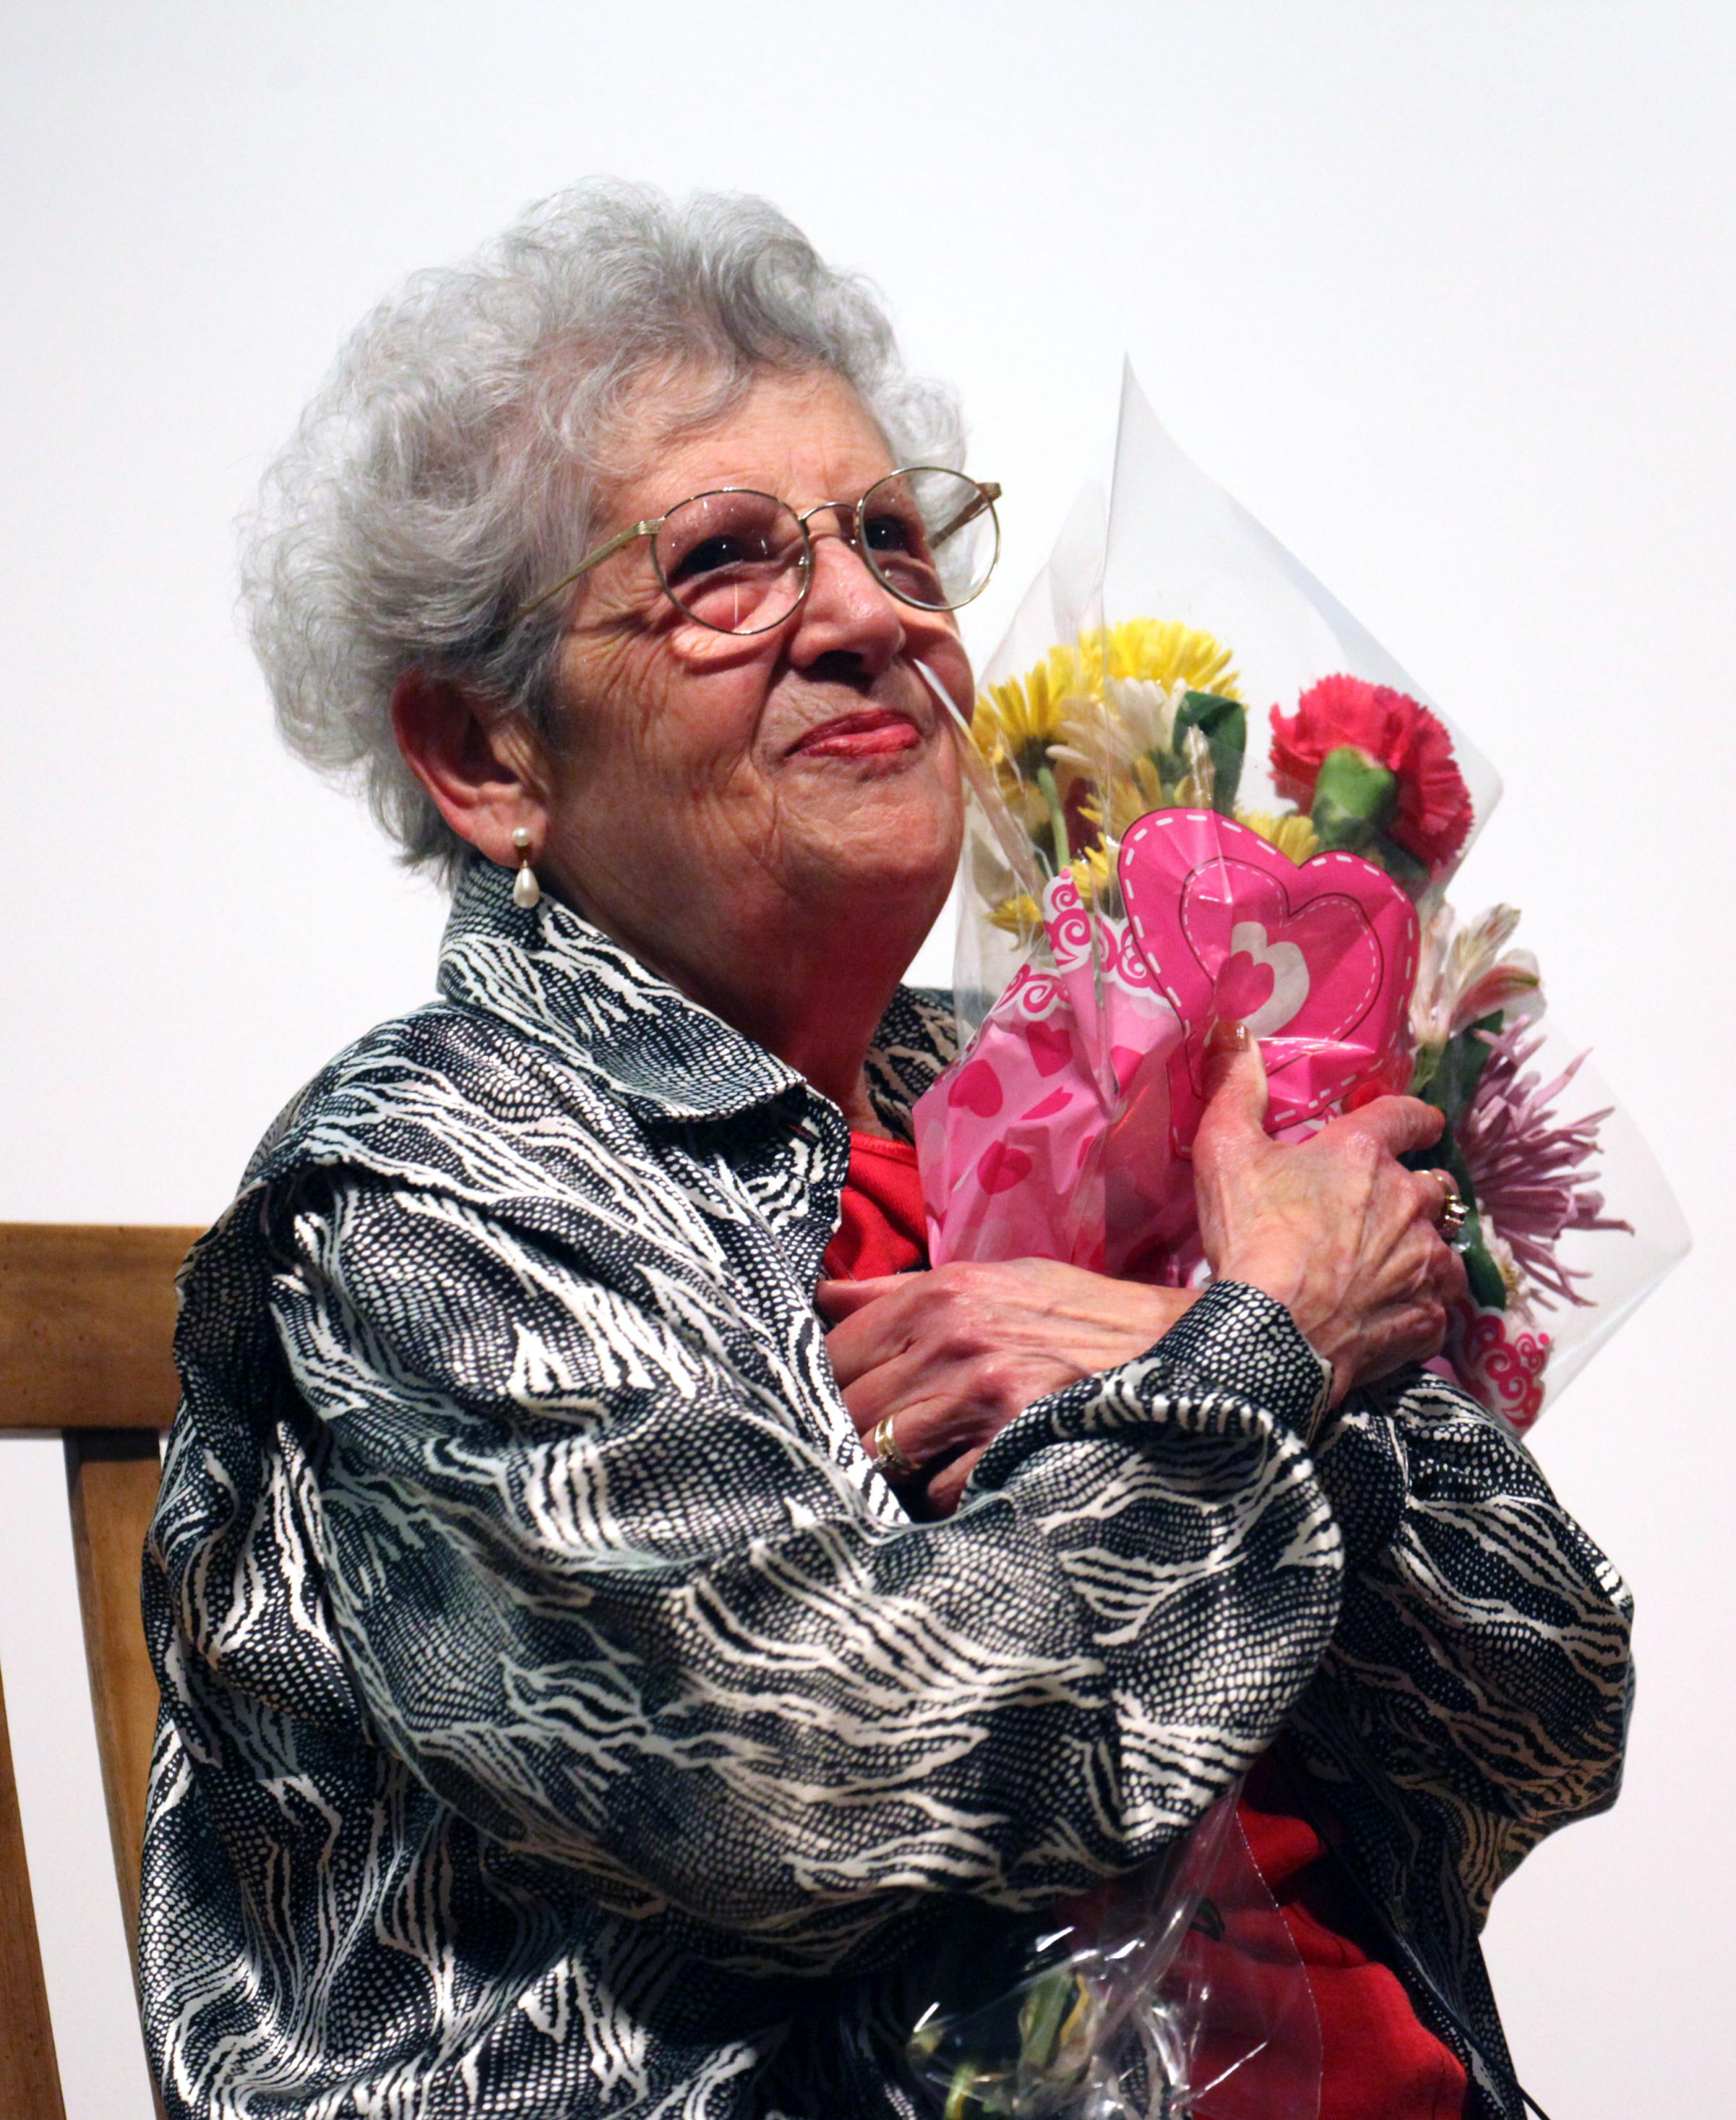 Noémi Ban, a survivor of the Auschwitz-Birkenau concentration camp who became an outspoken advocate and educator on the horrors of the Holocaust and the enduring power of love and tolerance, died on Friday, June 7 at the age of 96.